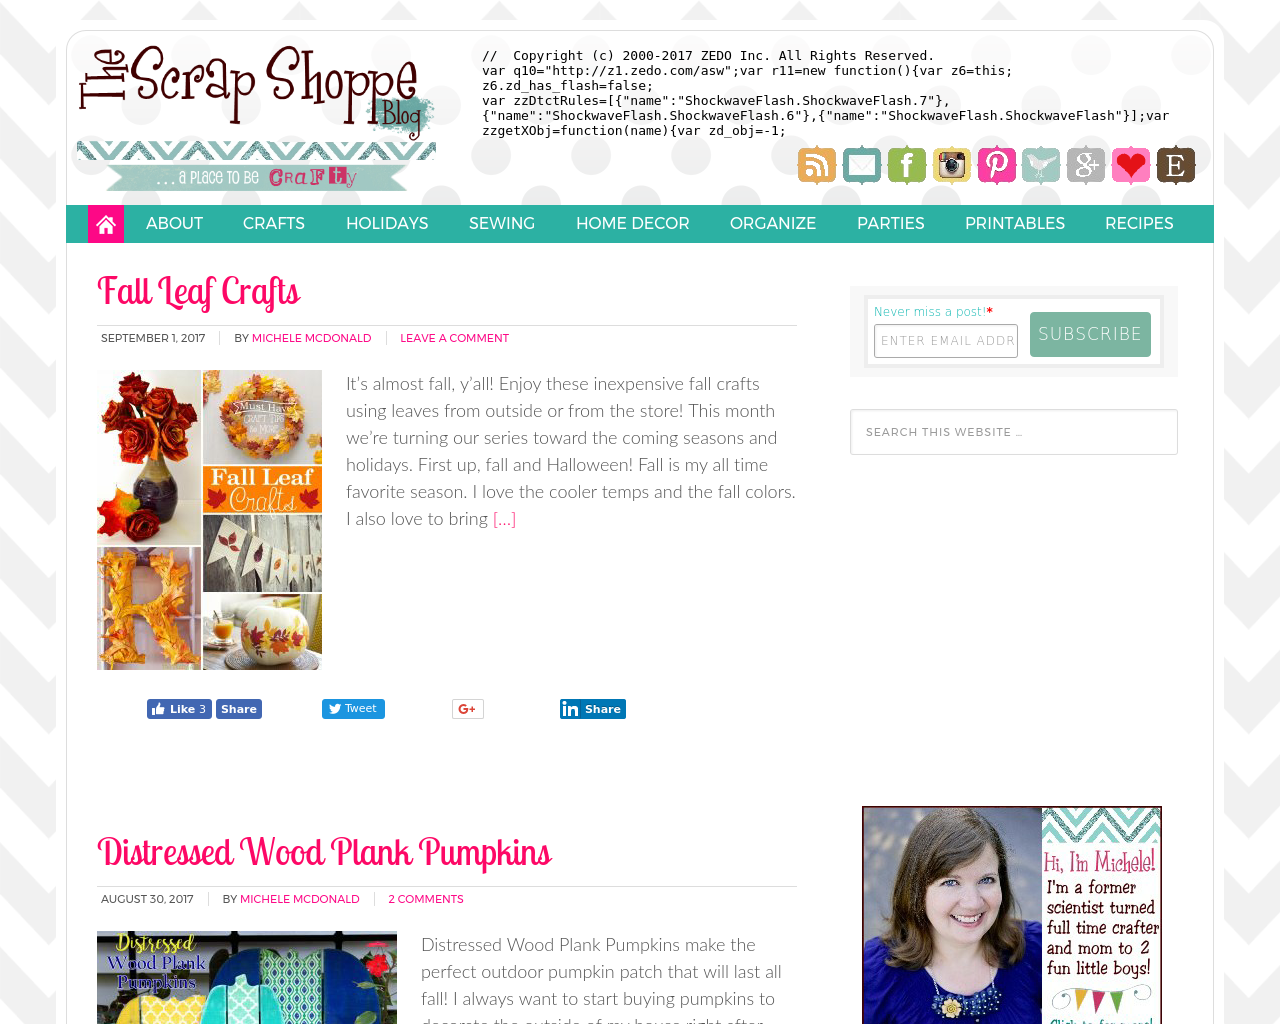 The-Scrap-Shoppe-Blog-Advertising-Reviews-Pricing